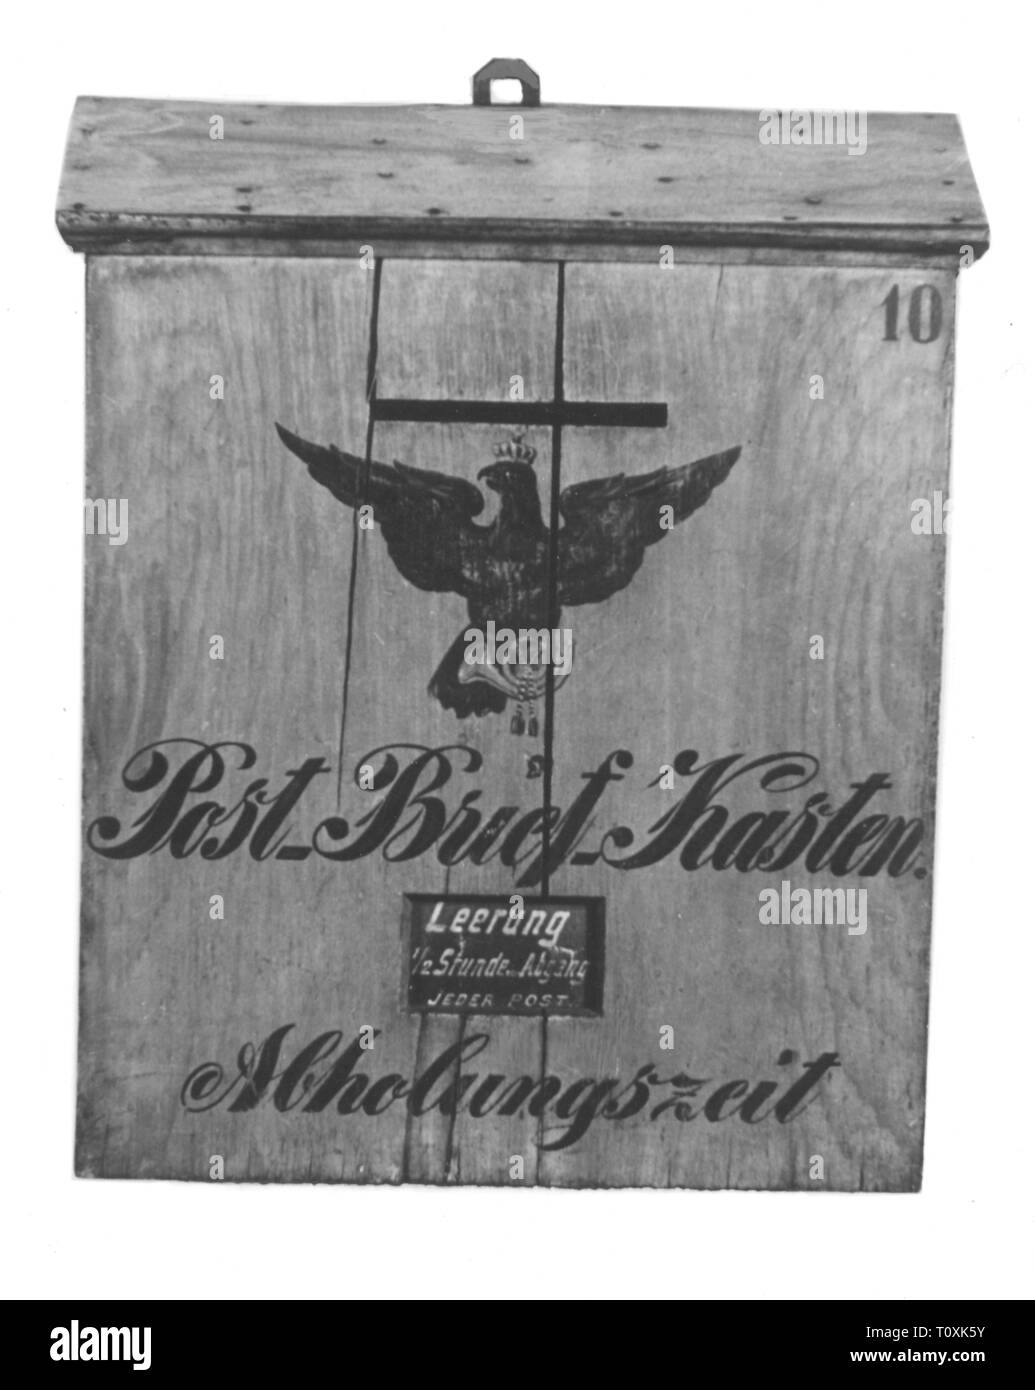 mail, letter boxes, letter-box of the Royal Prussian mail, 1850 - 1860, Additional-Rights-Clearance-Info-Not-Available Stock Photo